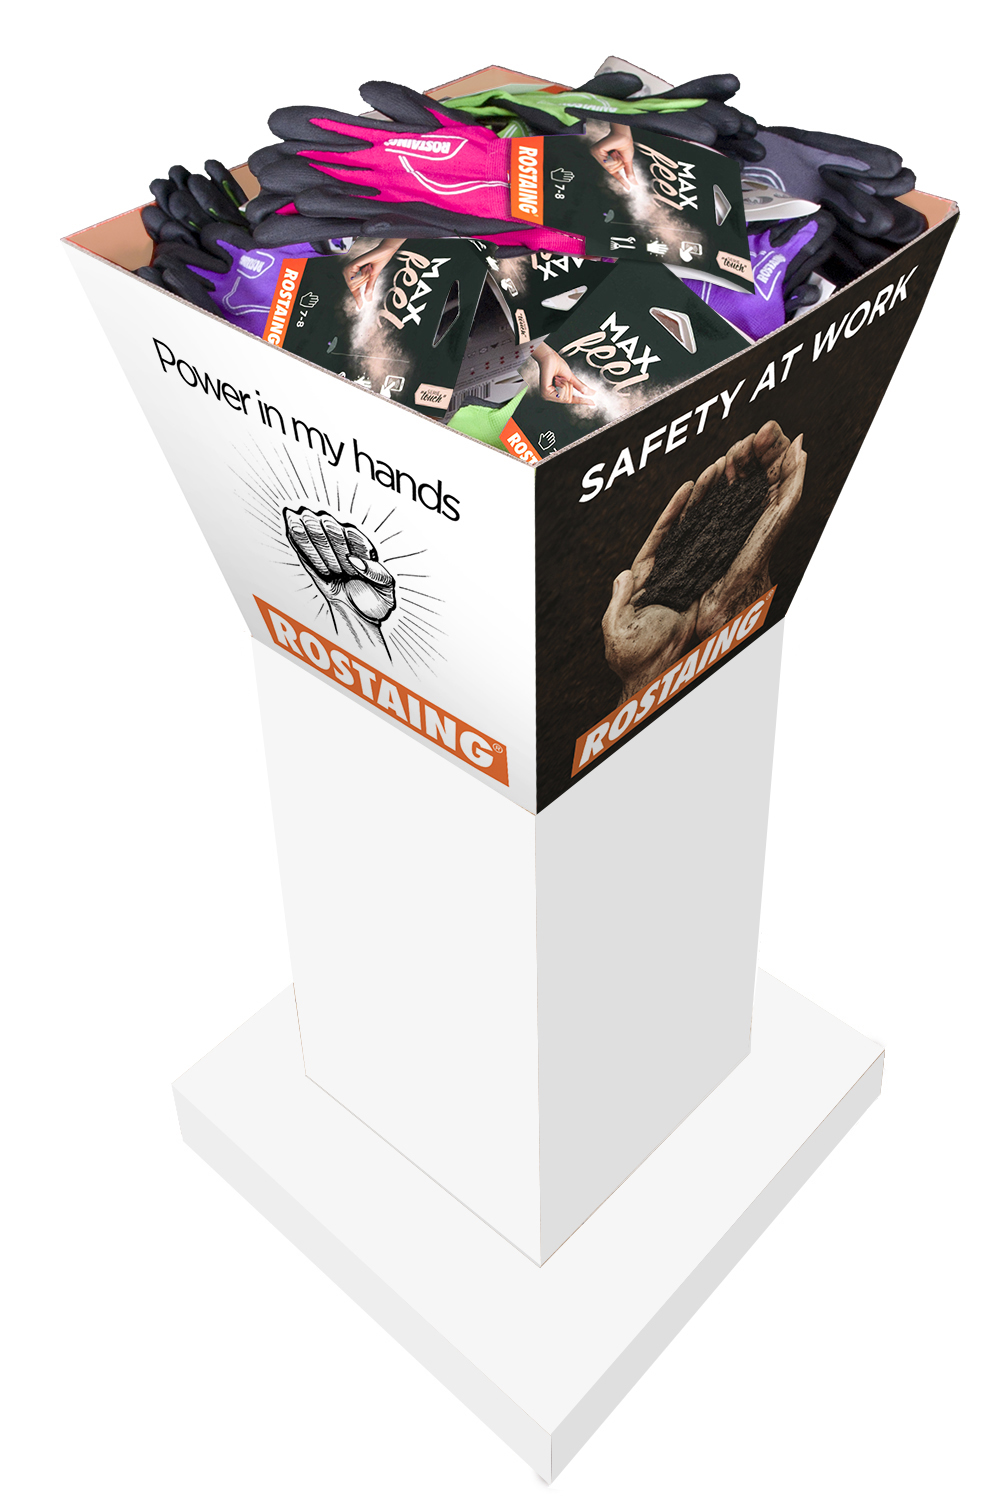 How to make winning shelf displays with Rostaing?